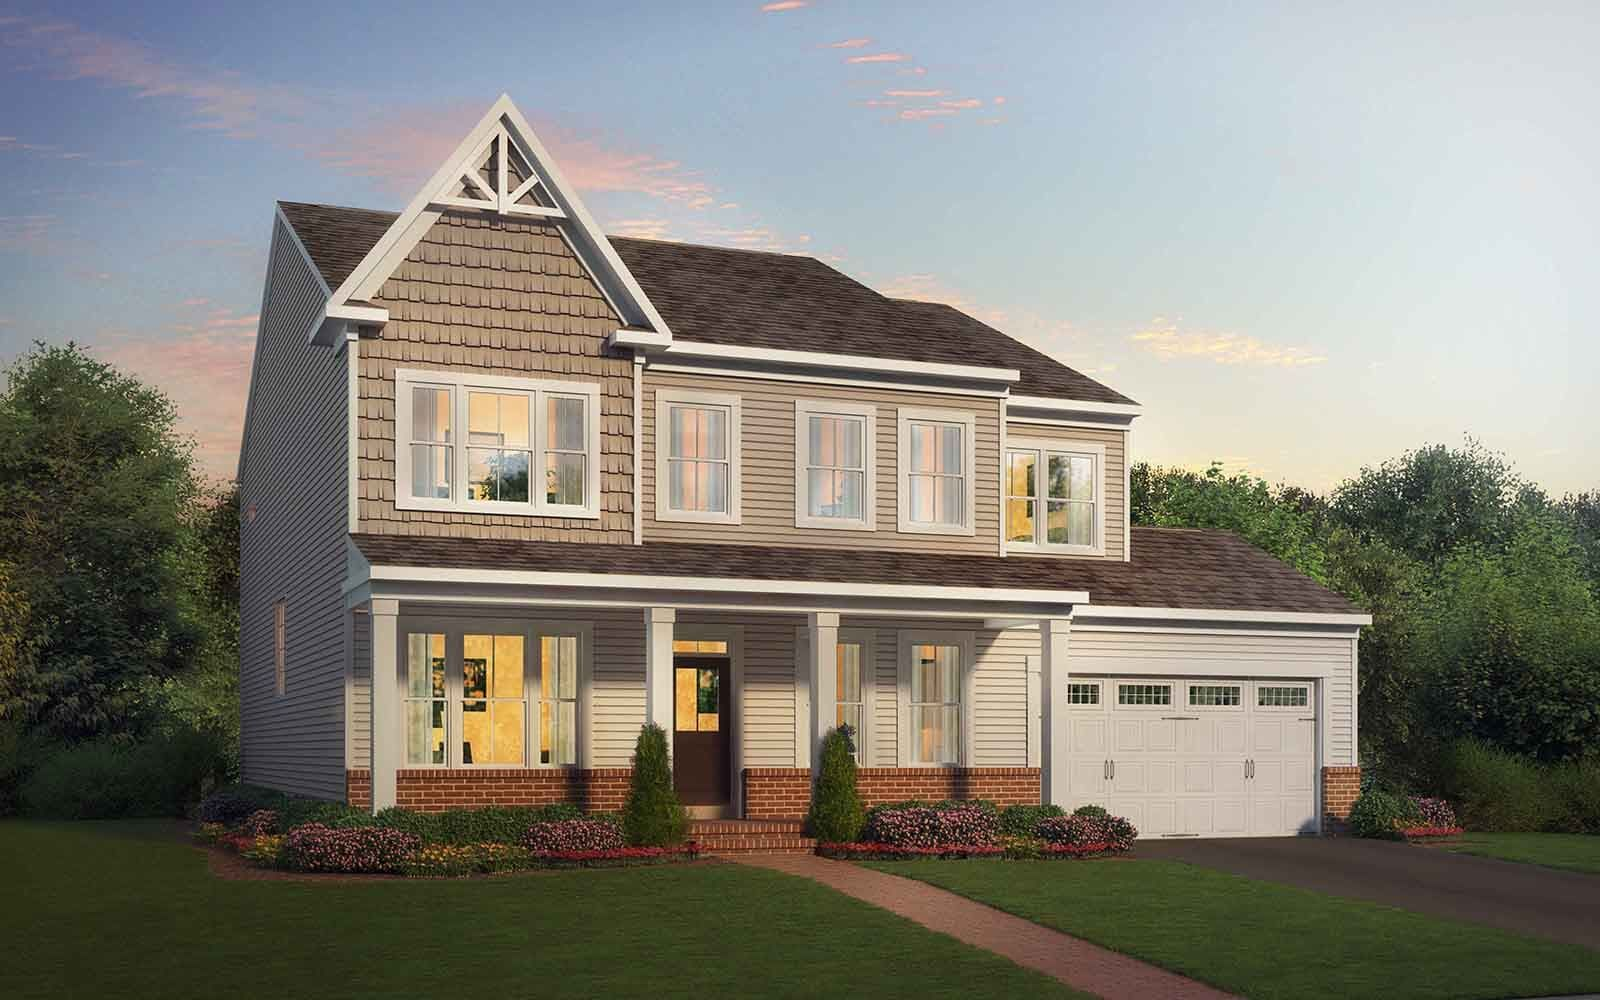 Exterior:Elevation 4 of the Kensington II a home design by Brookfield Residential at Potomac Shores